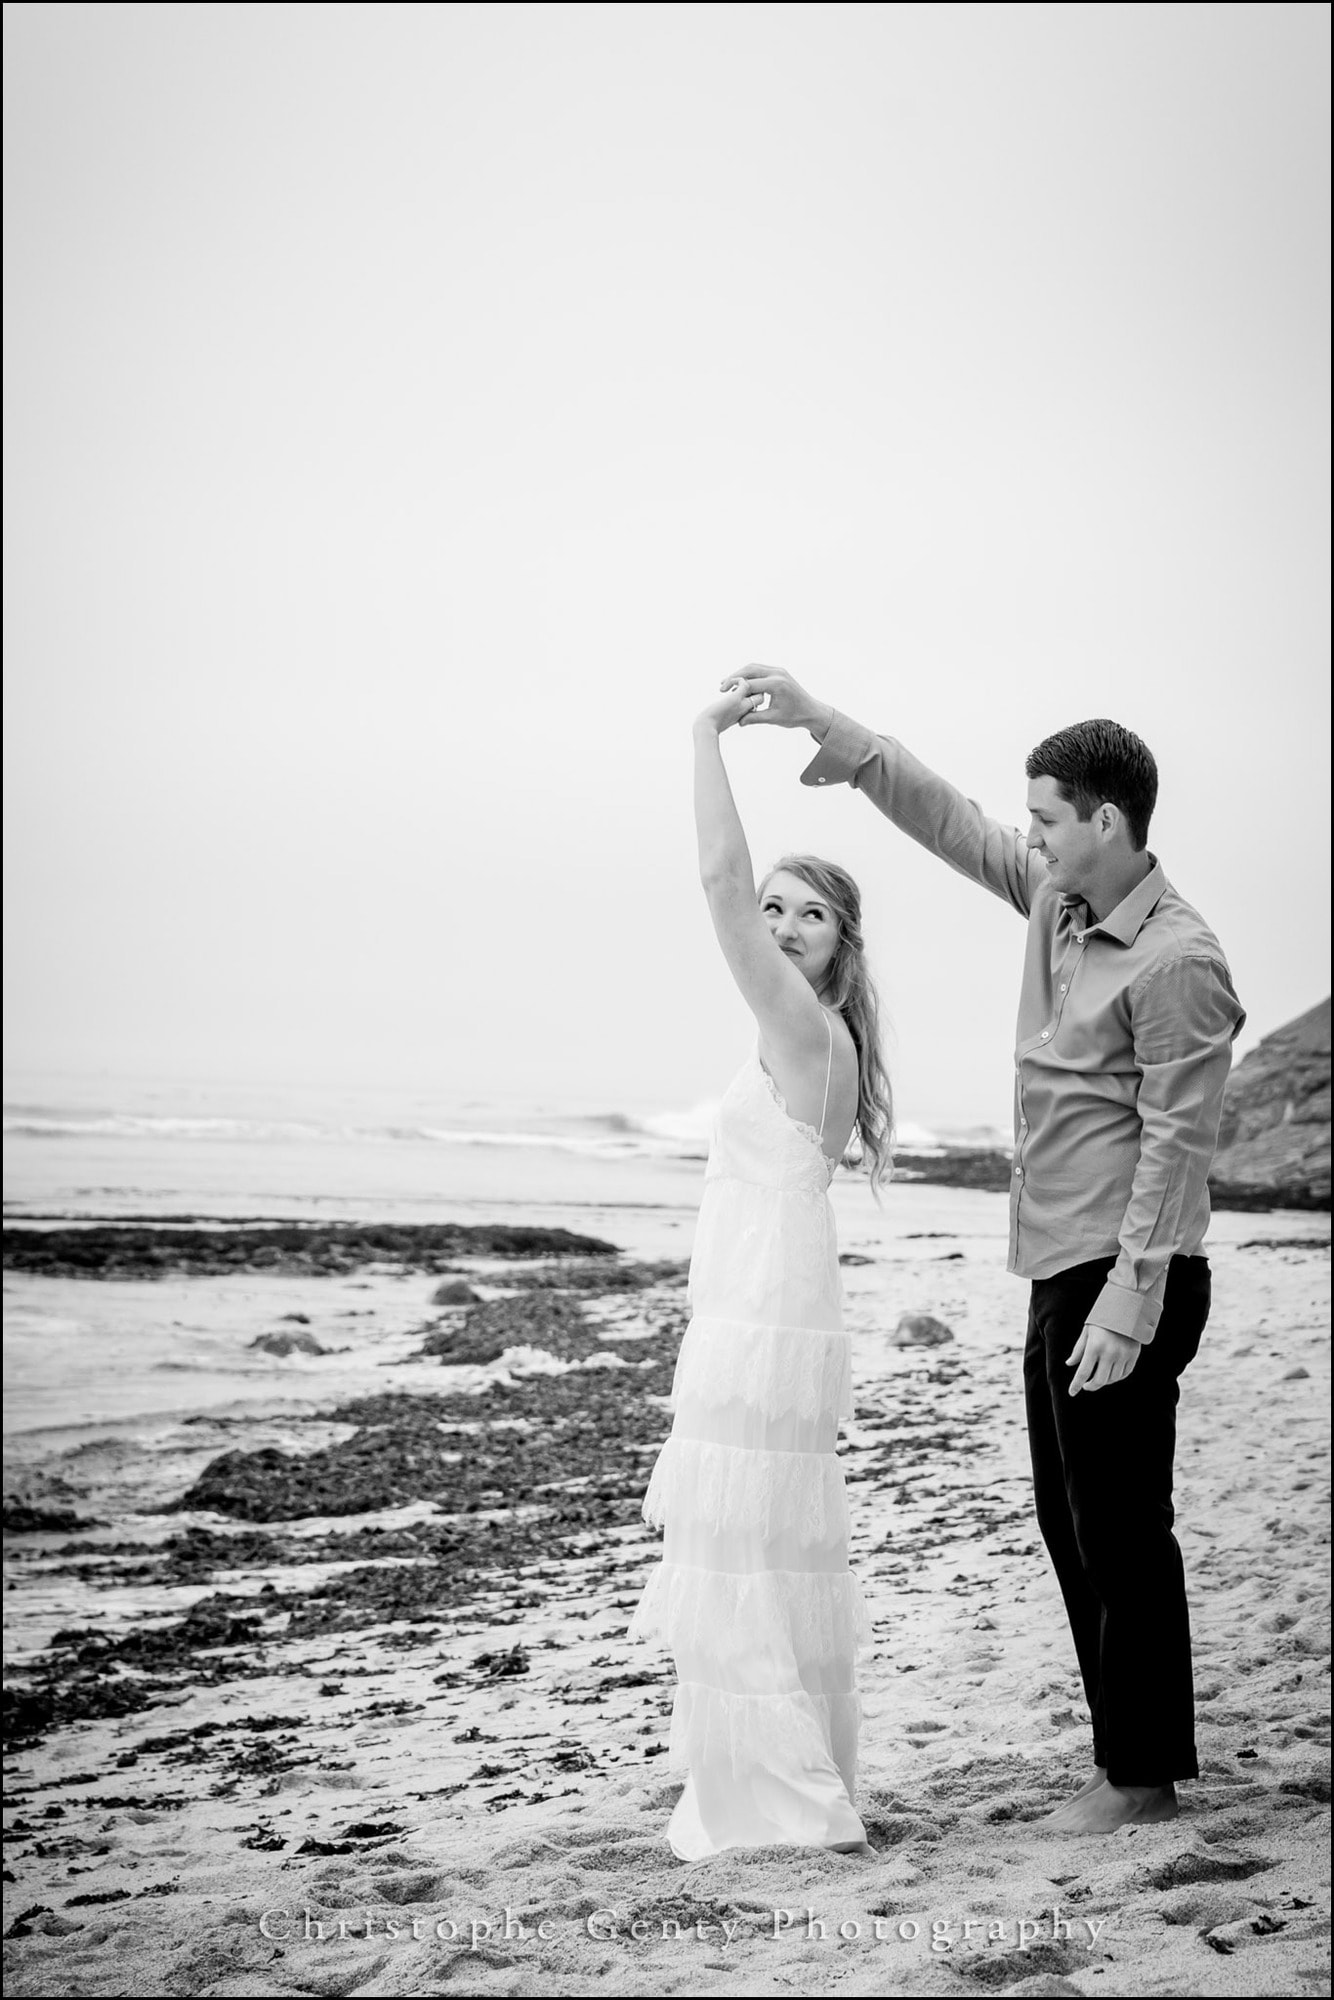 Engagement Photography in Half Moon Bay, CA